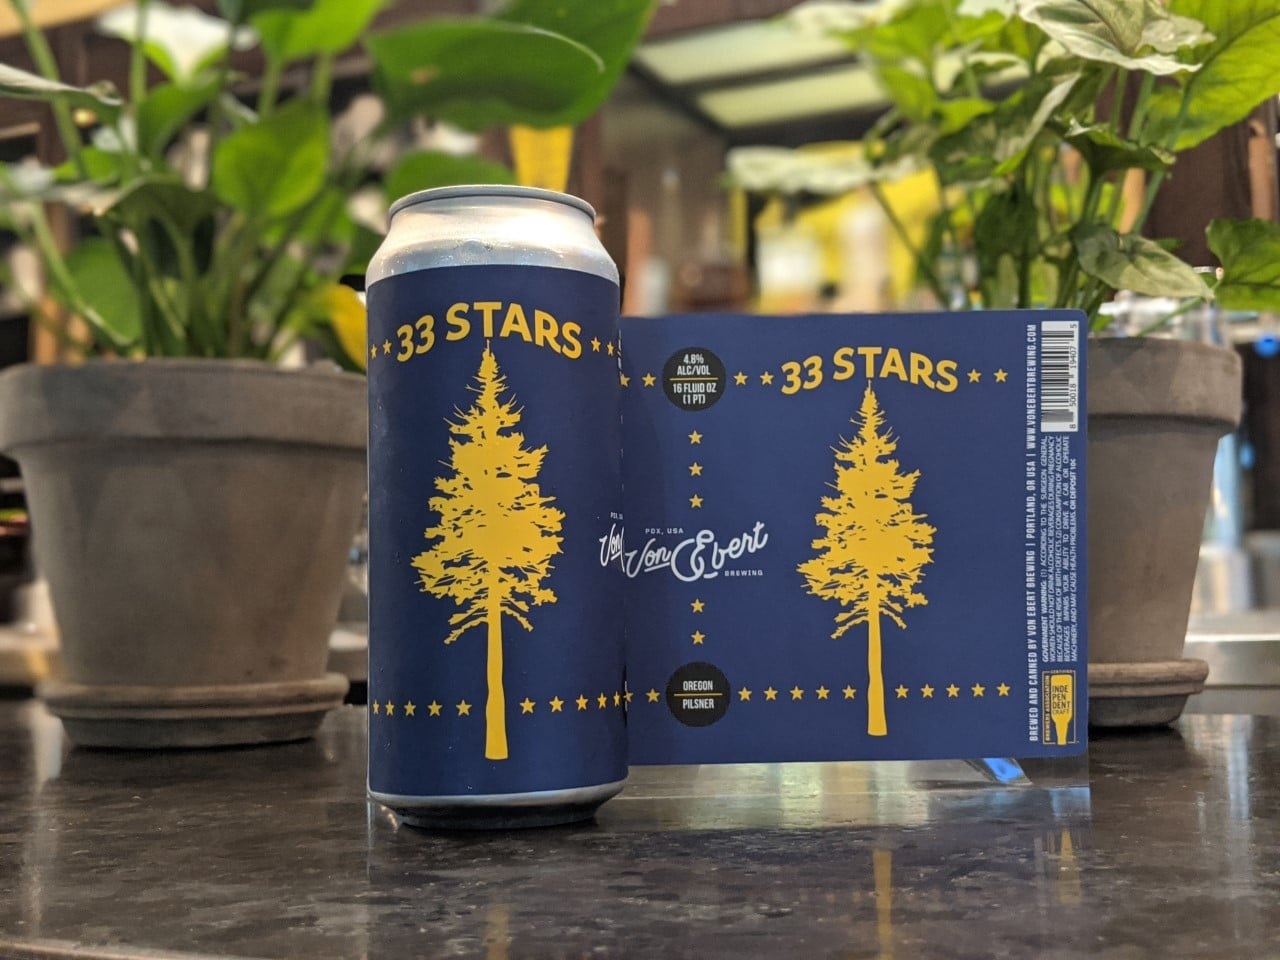 image of 33 Stars courtesy of Von Ebert Brewing